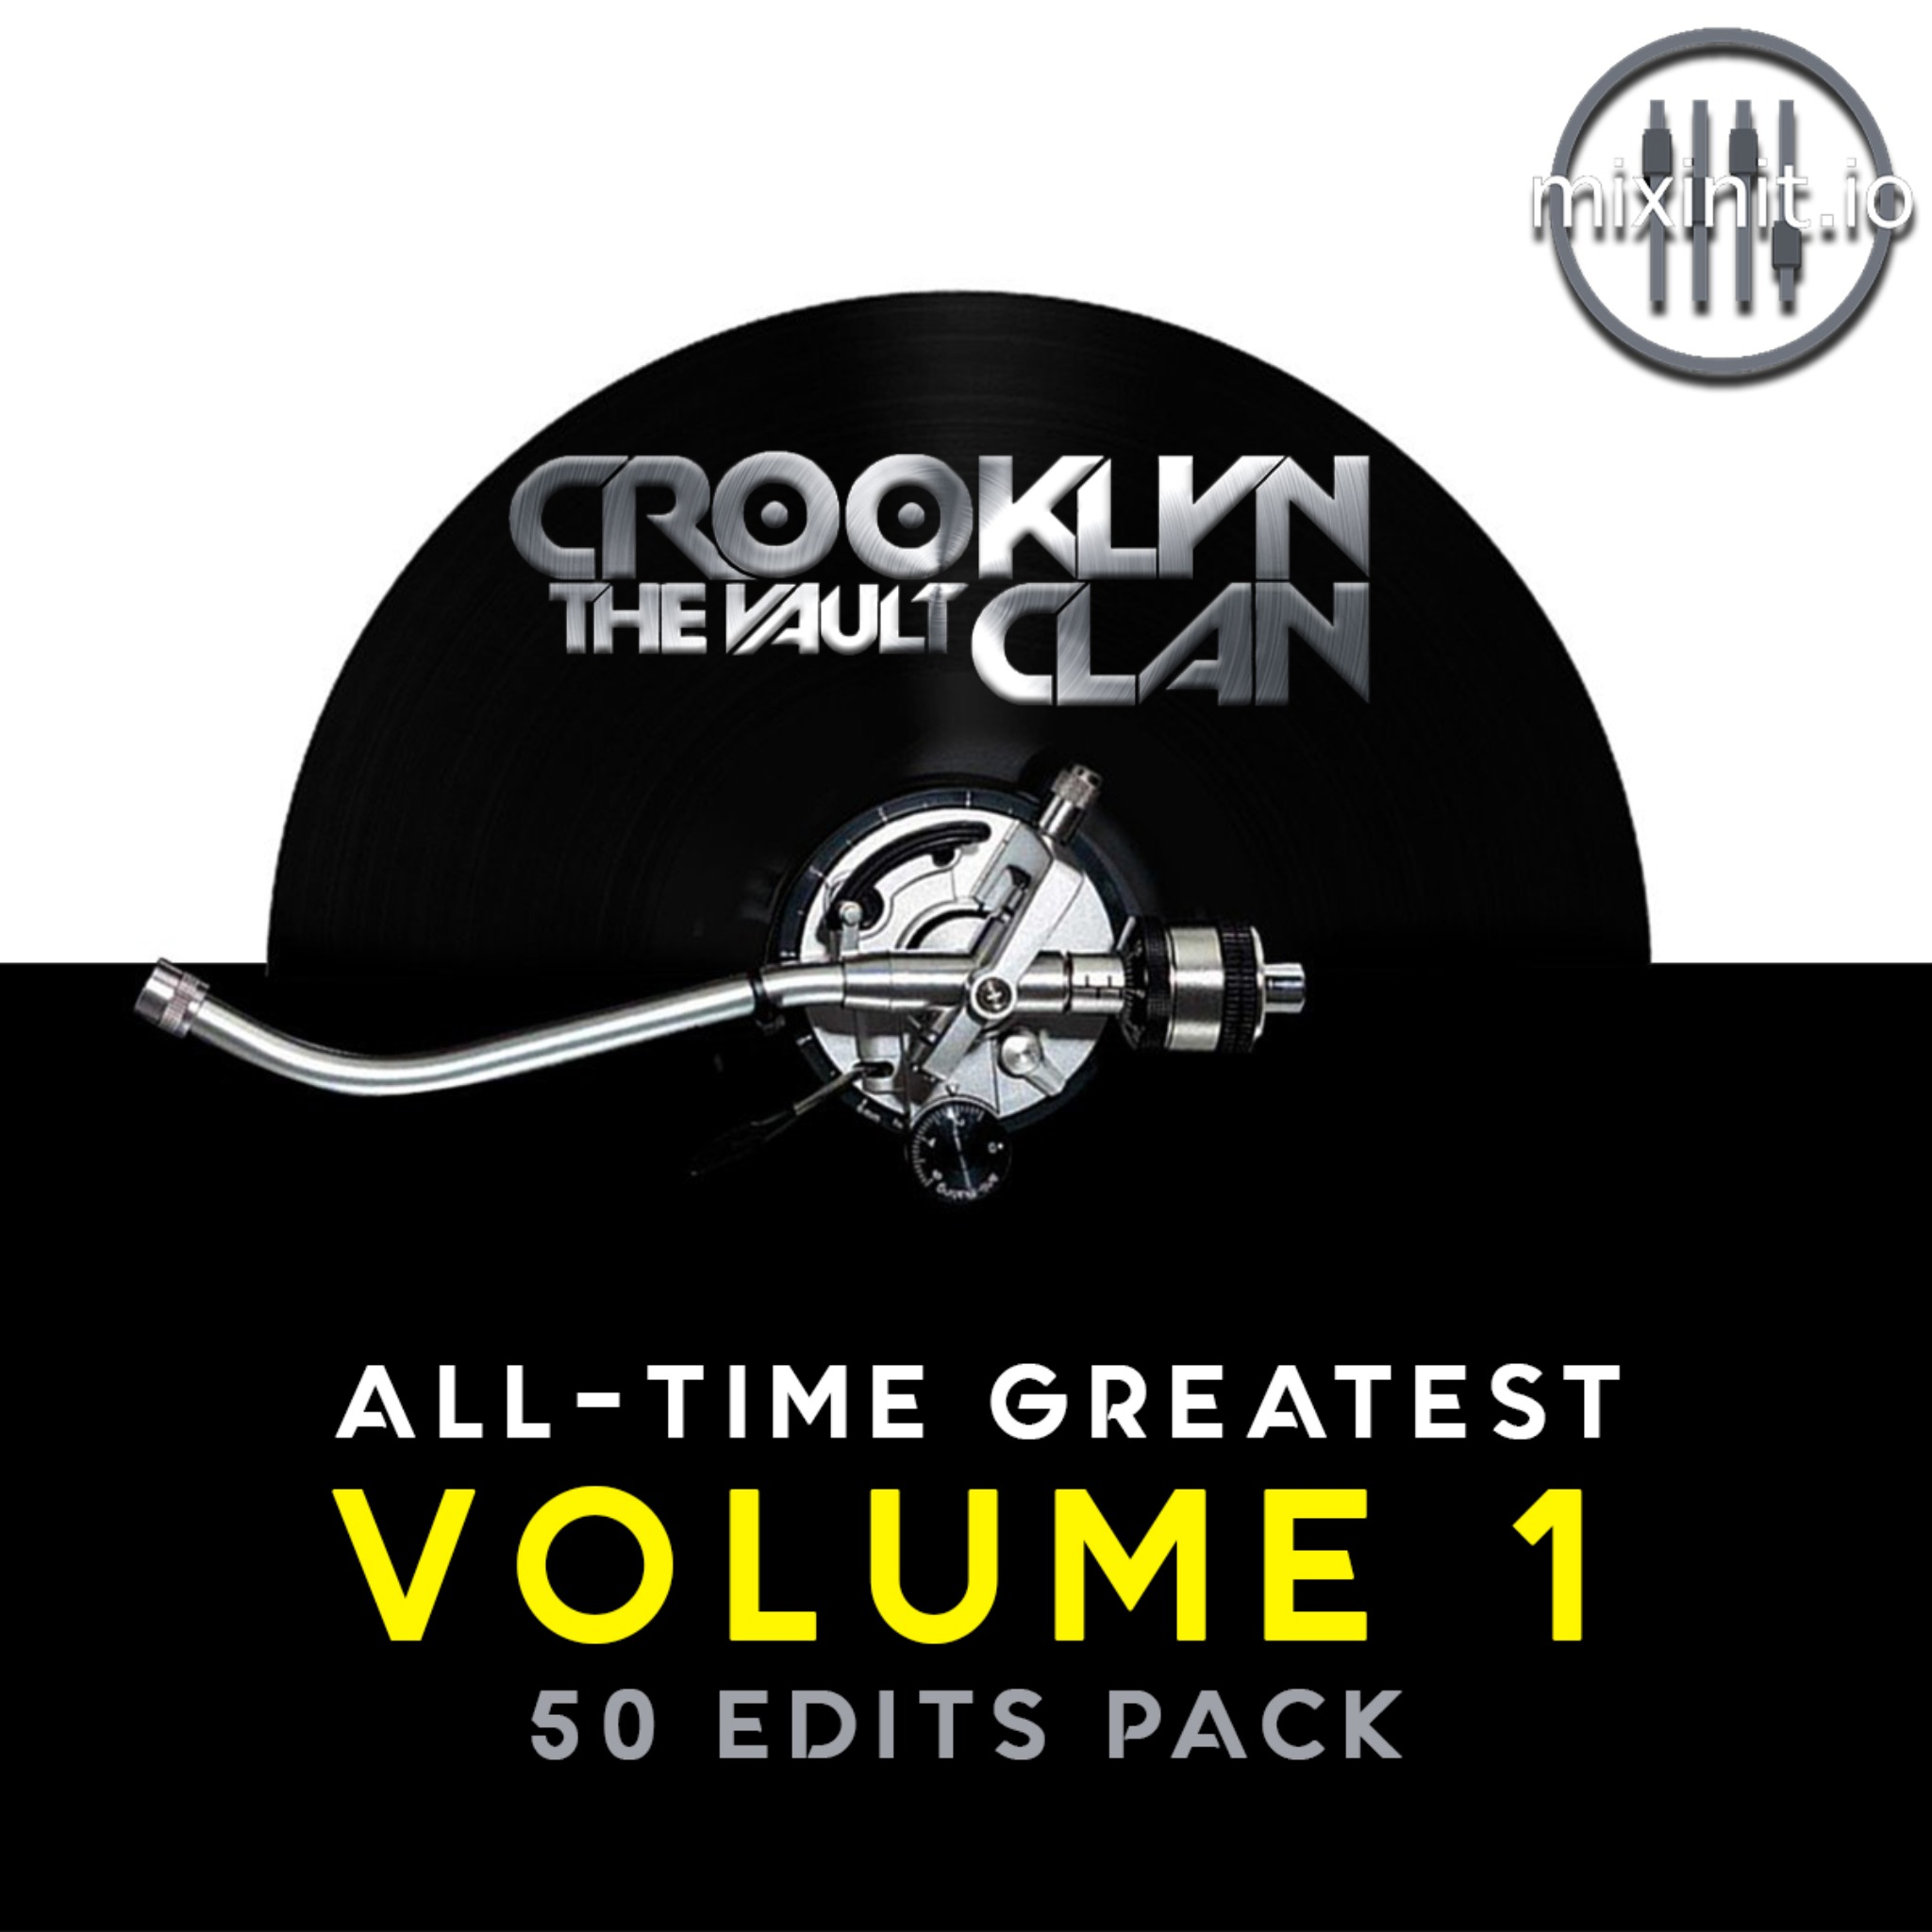 Best of the Classic Crooklyn Clan Vault Vol. 1 (Various Editors)